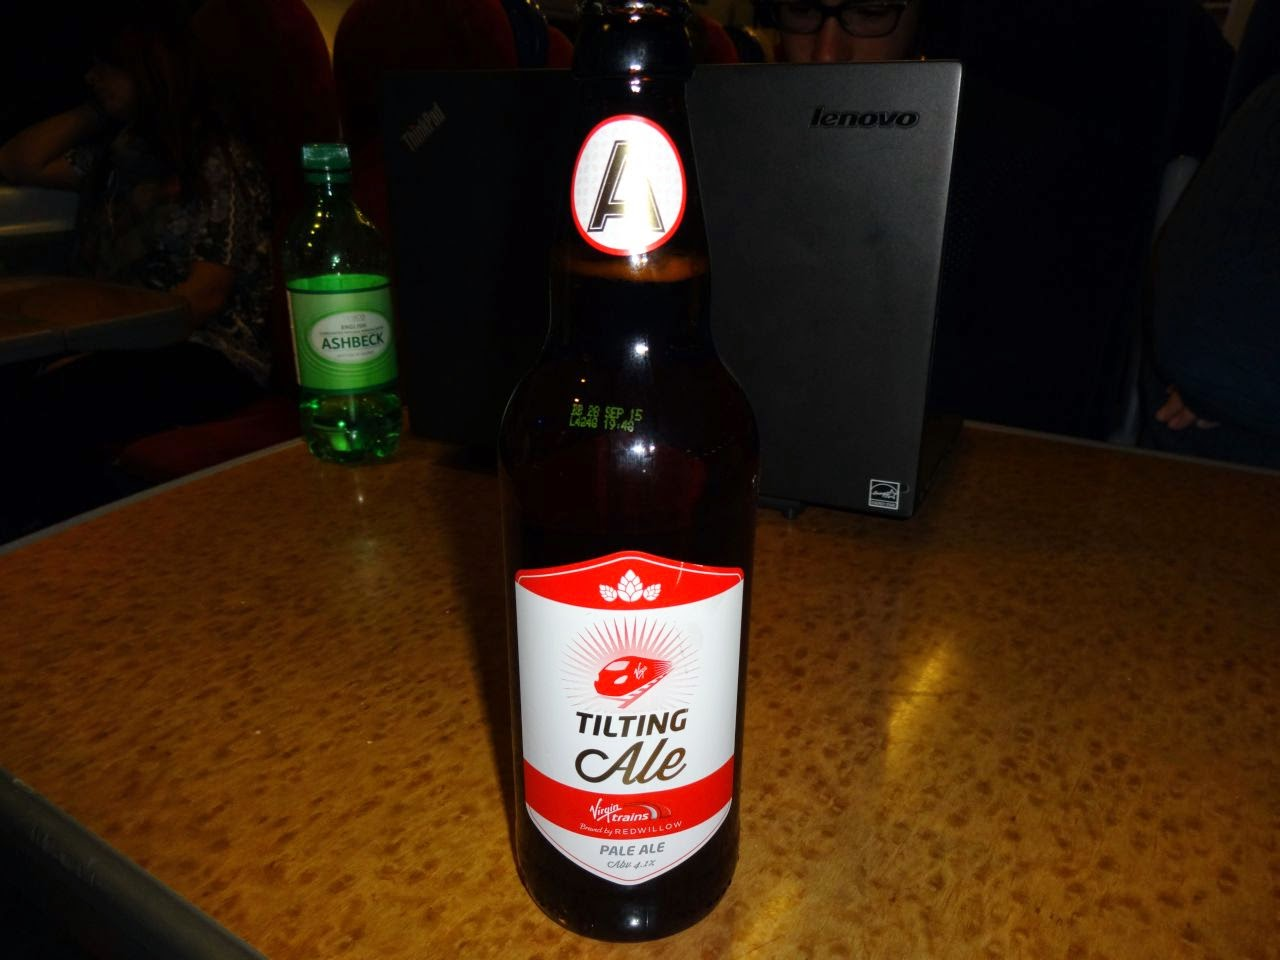 Bottle Of Tilting Ale